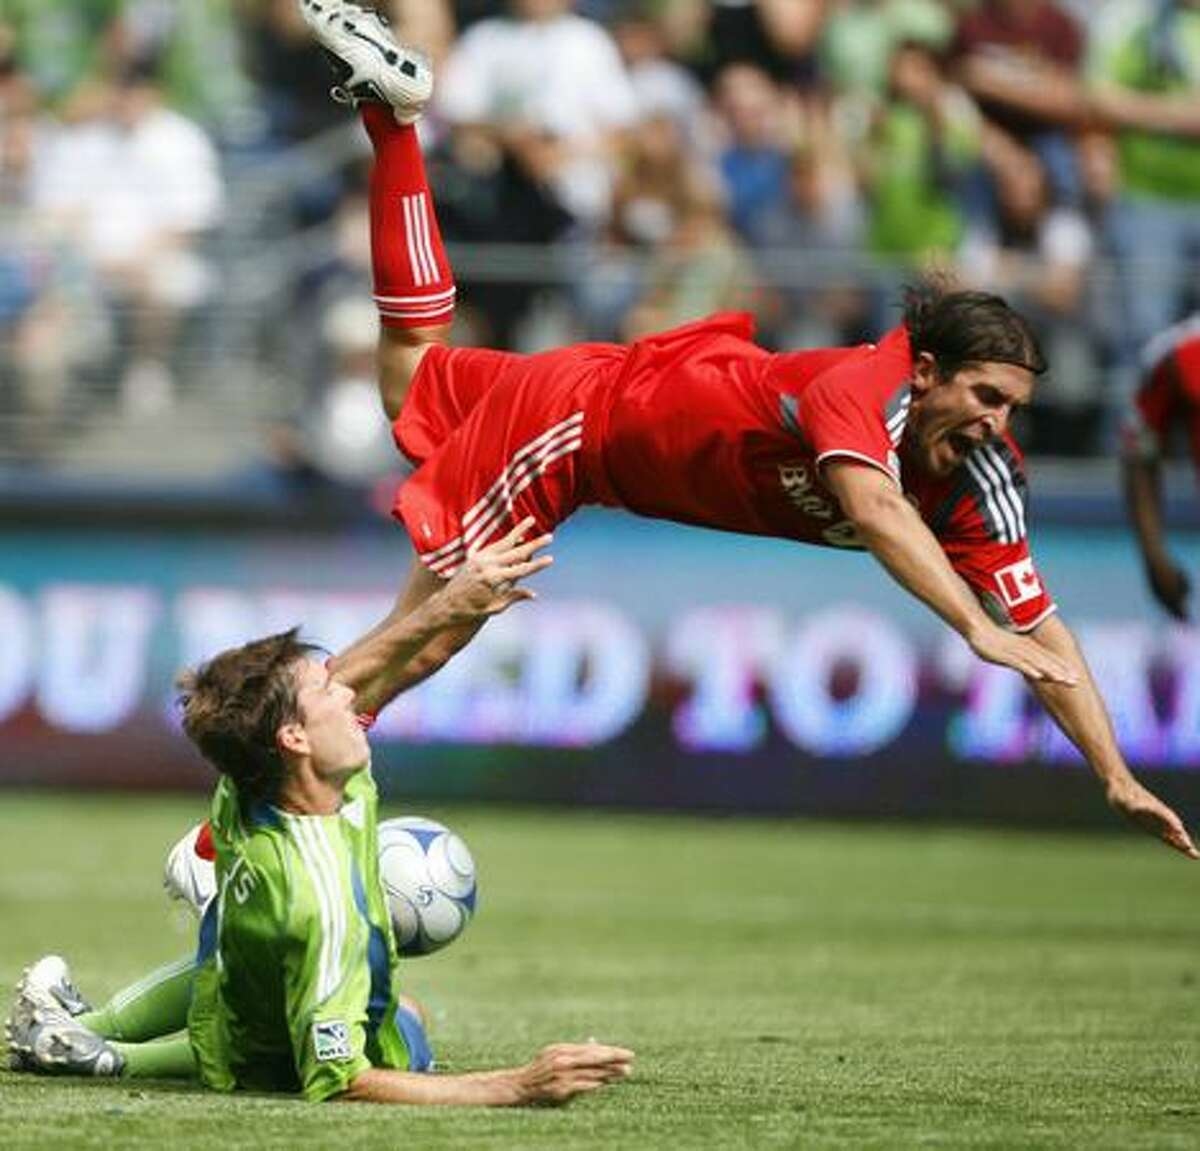 Seattle Sounders player Brad Evans and Toronto FC player Nick Garcia tangle near the Sounders' goal on Saturday August 29, 2009 in the second half of a match at Qwest Field in Seattle.